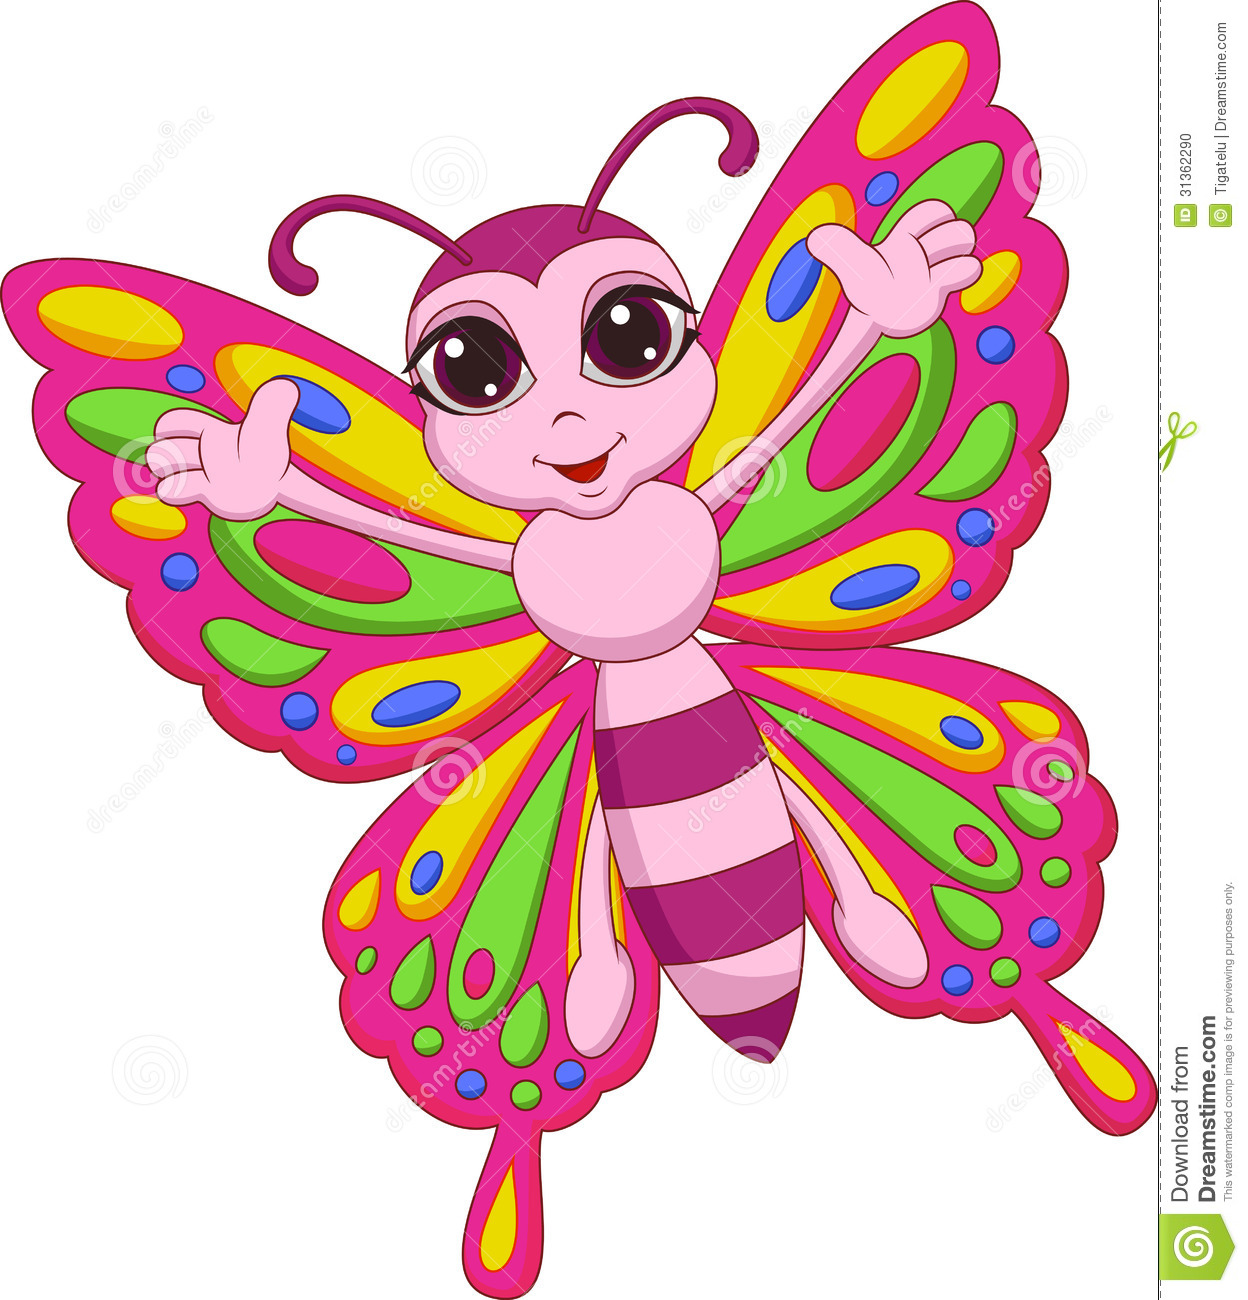 Uncategorized Butterfly Images For Kids butterfly pictures kids search 890f6a6 png